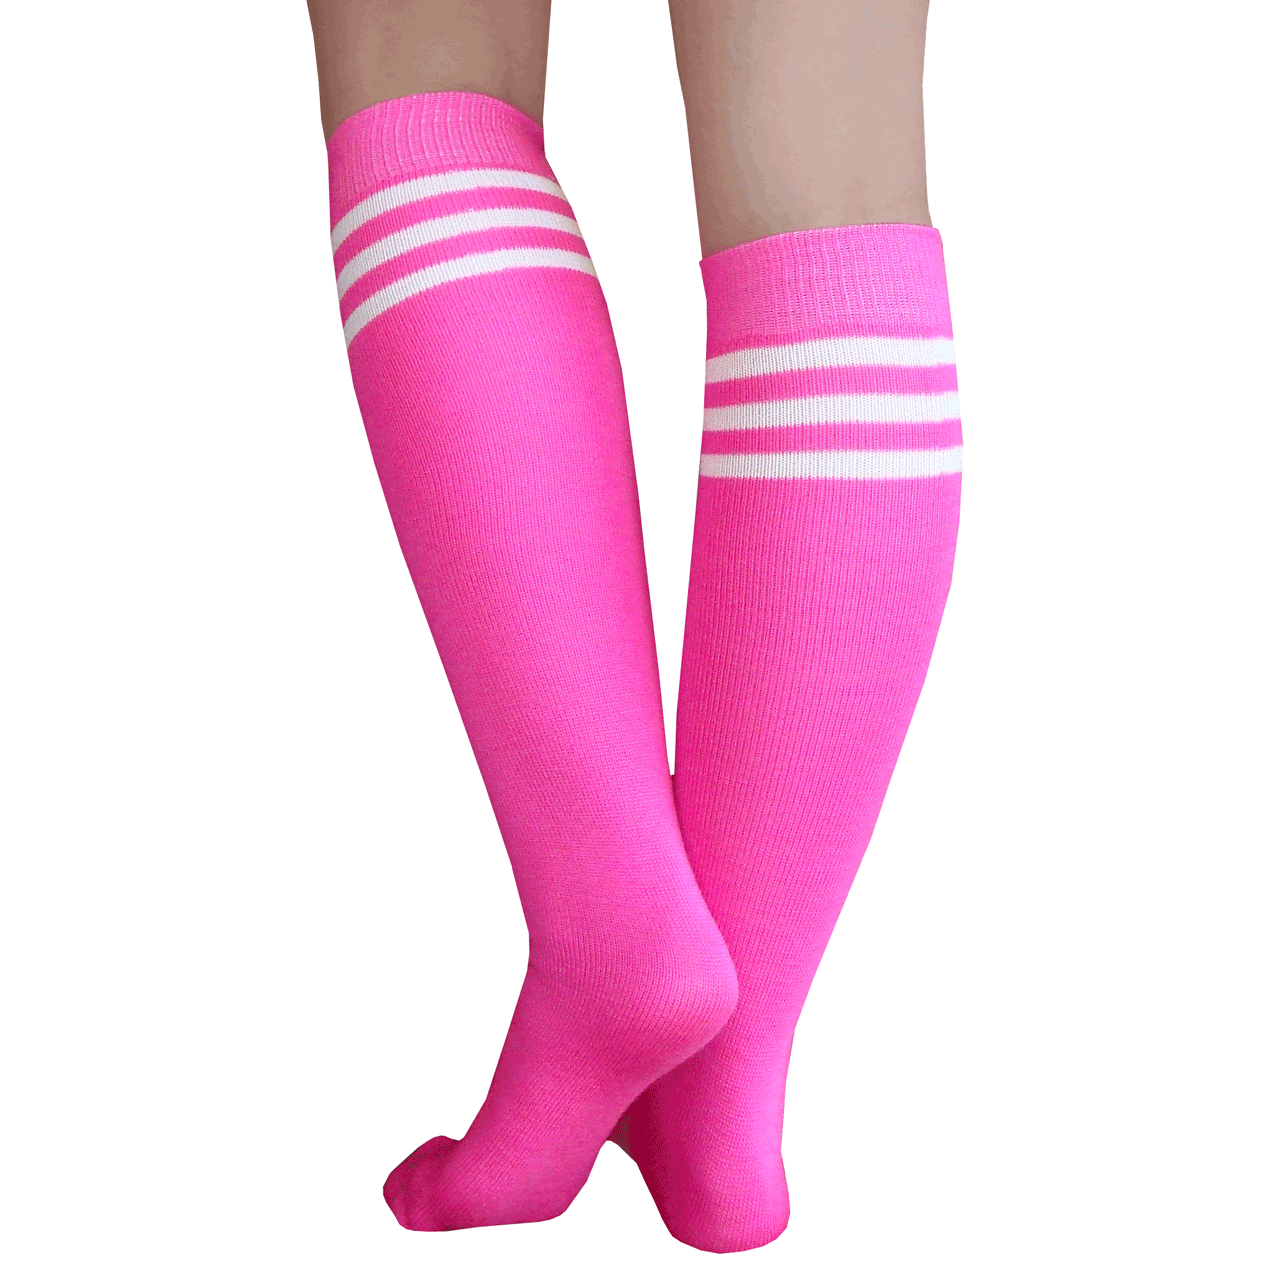 Ladies//Women Argyle Over the Knee socks in Pinks shoe size4-7